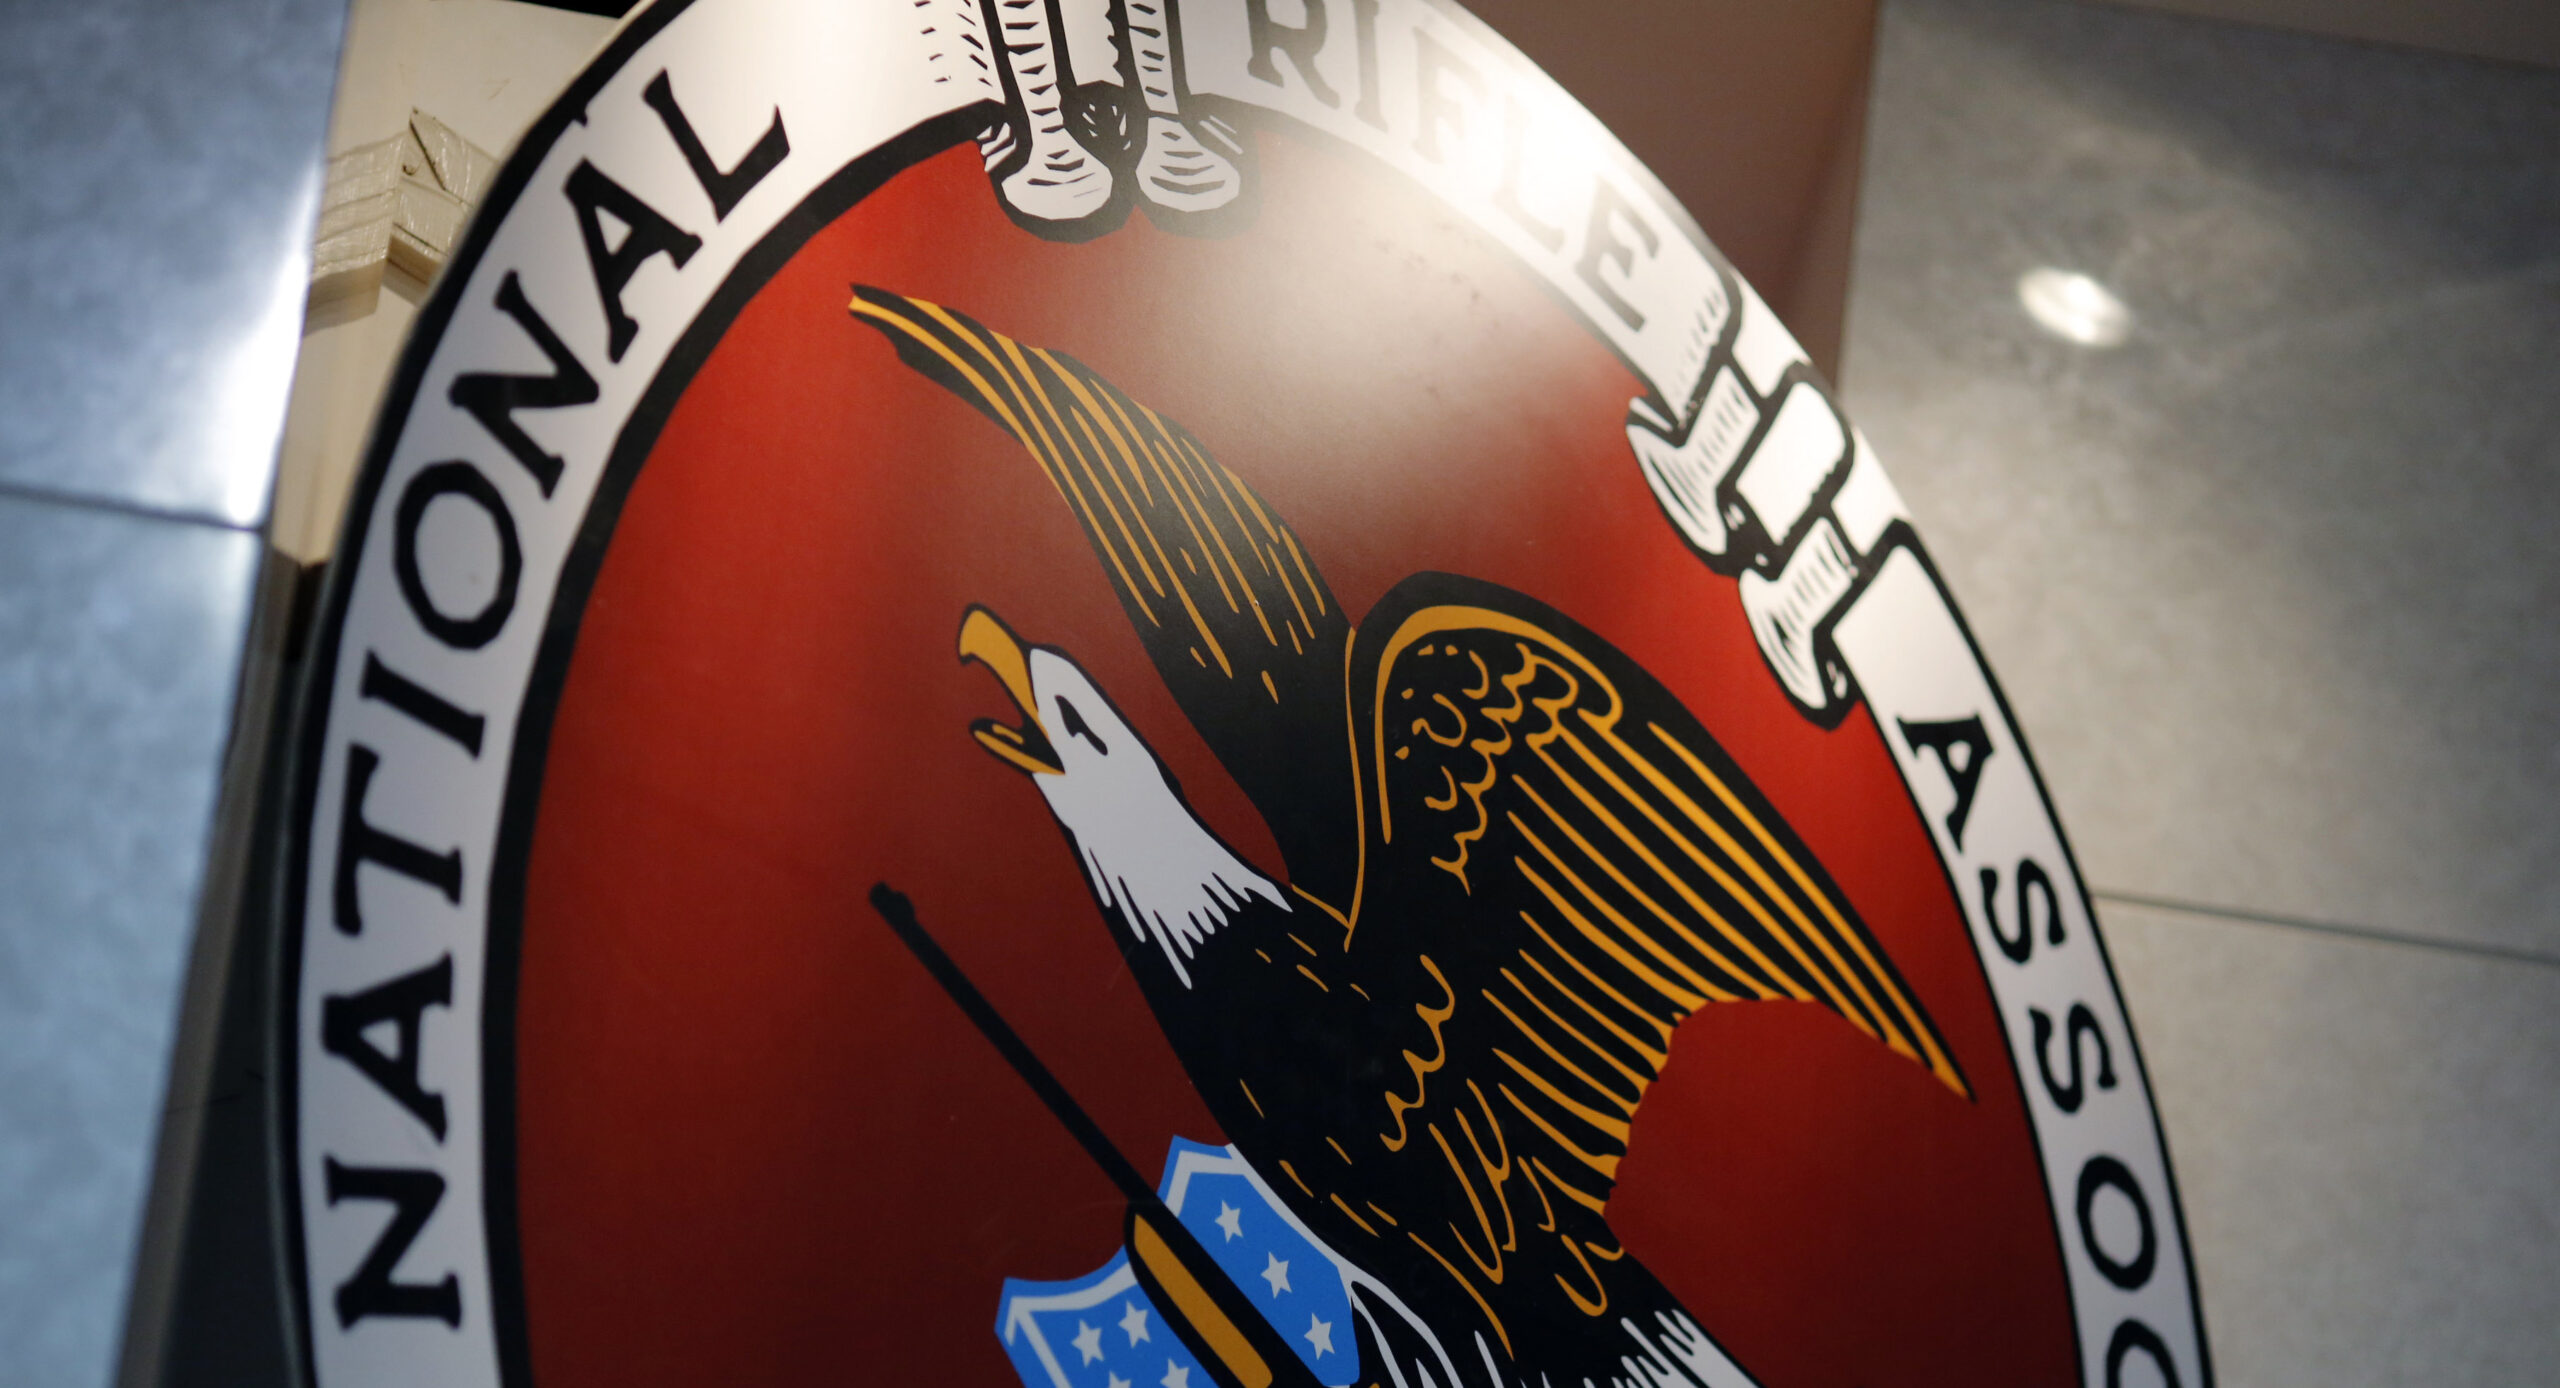 NRA's Bankruptcy Case Dismissal Applauded by Gun Safety Advocates in Pennsylvania